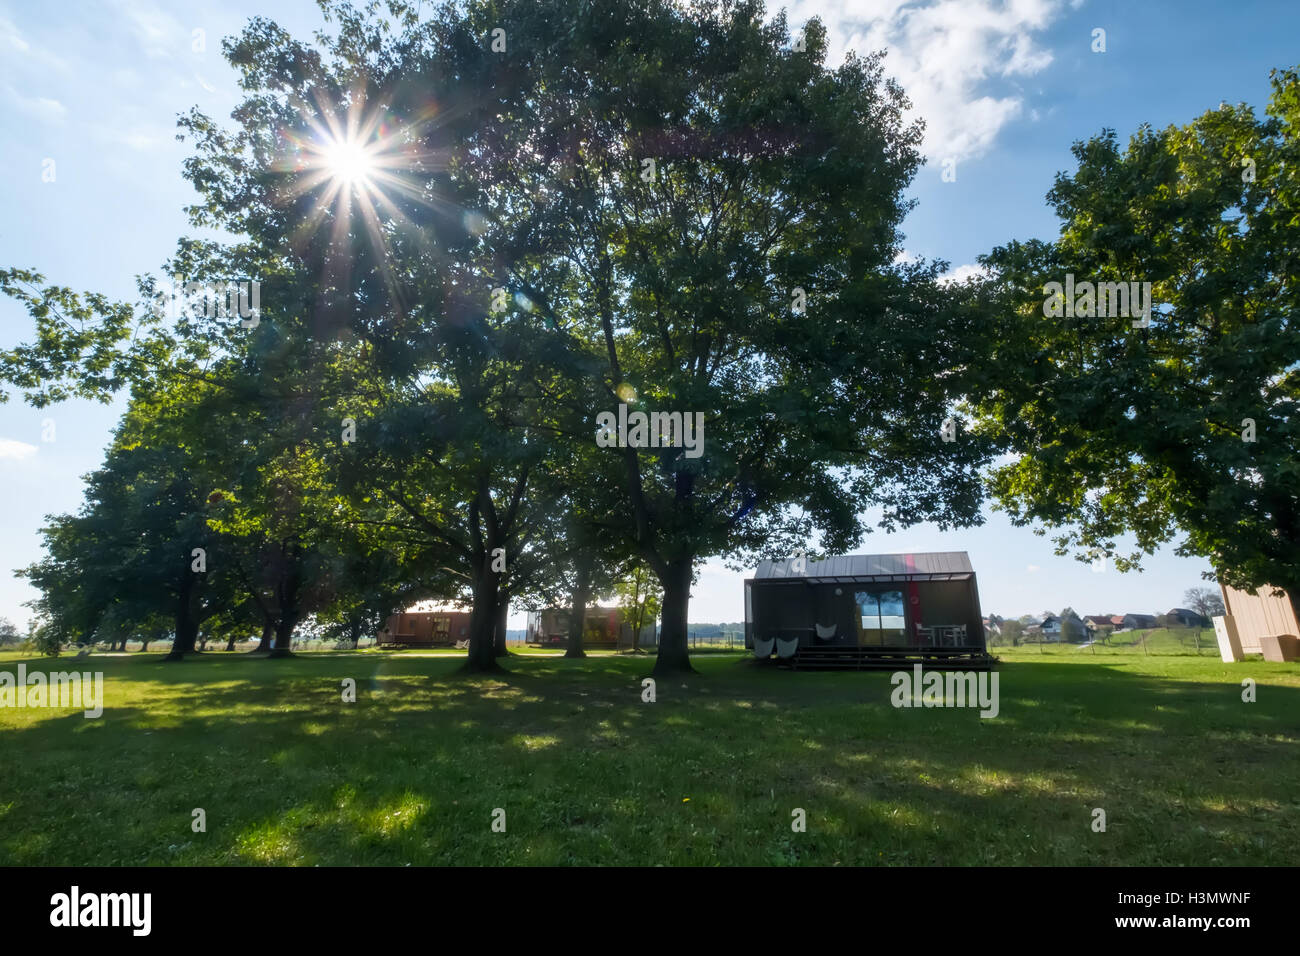 Mobile home in the gardens at Big Berry lifestyle glamping resort at Kolpa river Slovenia - Stock Image